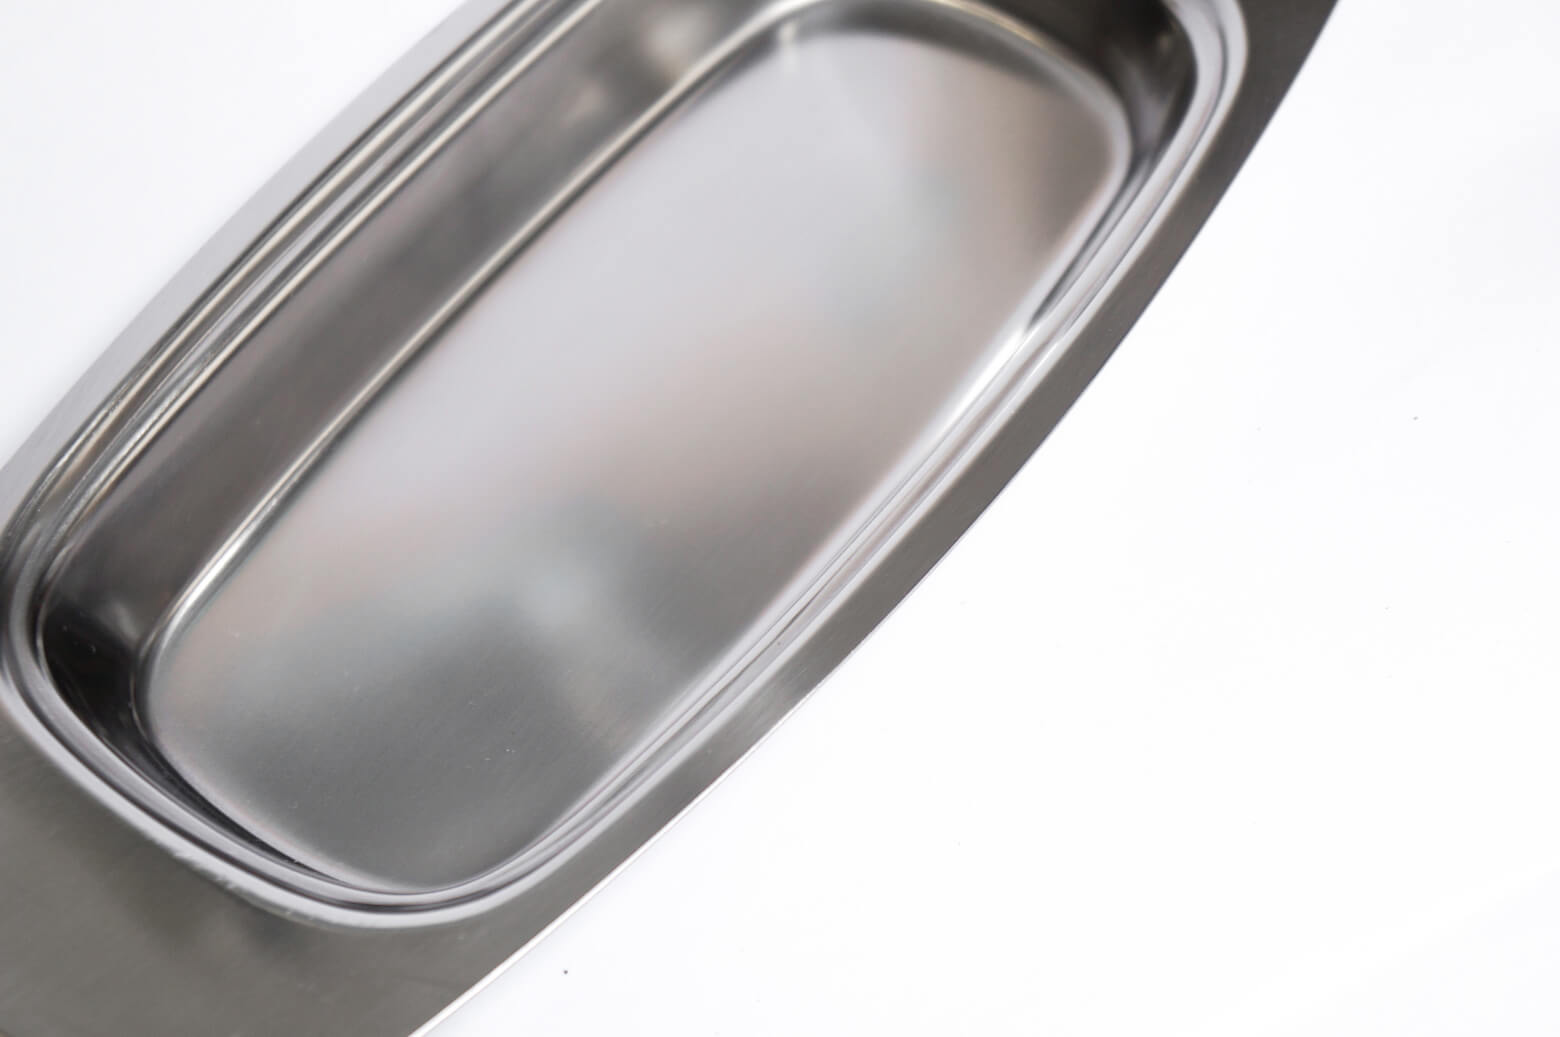 Danish Vintage Butter Dish Stainless/デンマーク ヴィンテージ バターディッシュ ケース ステンレス 北欧 キッチン雑貨